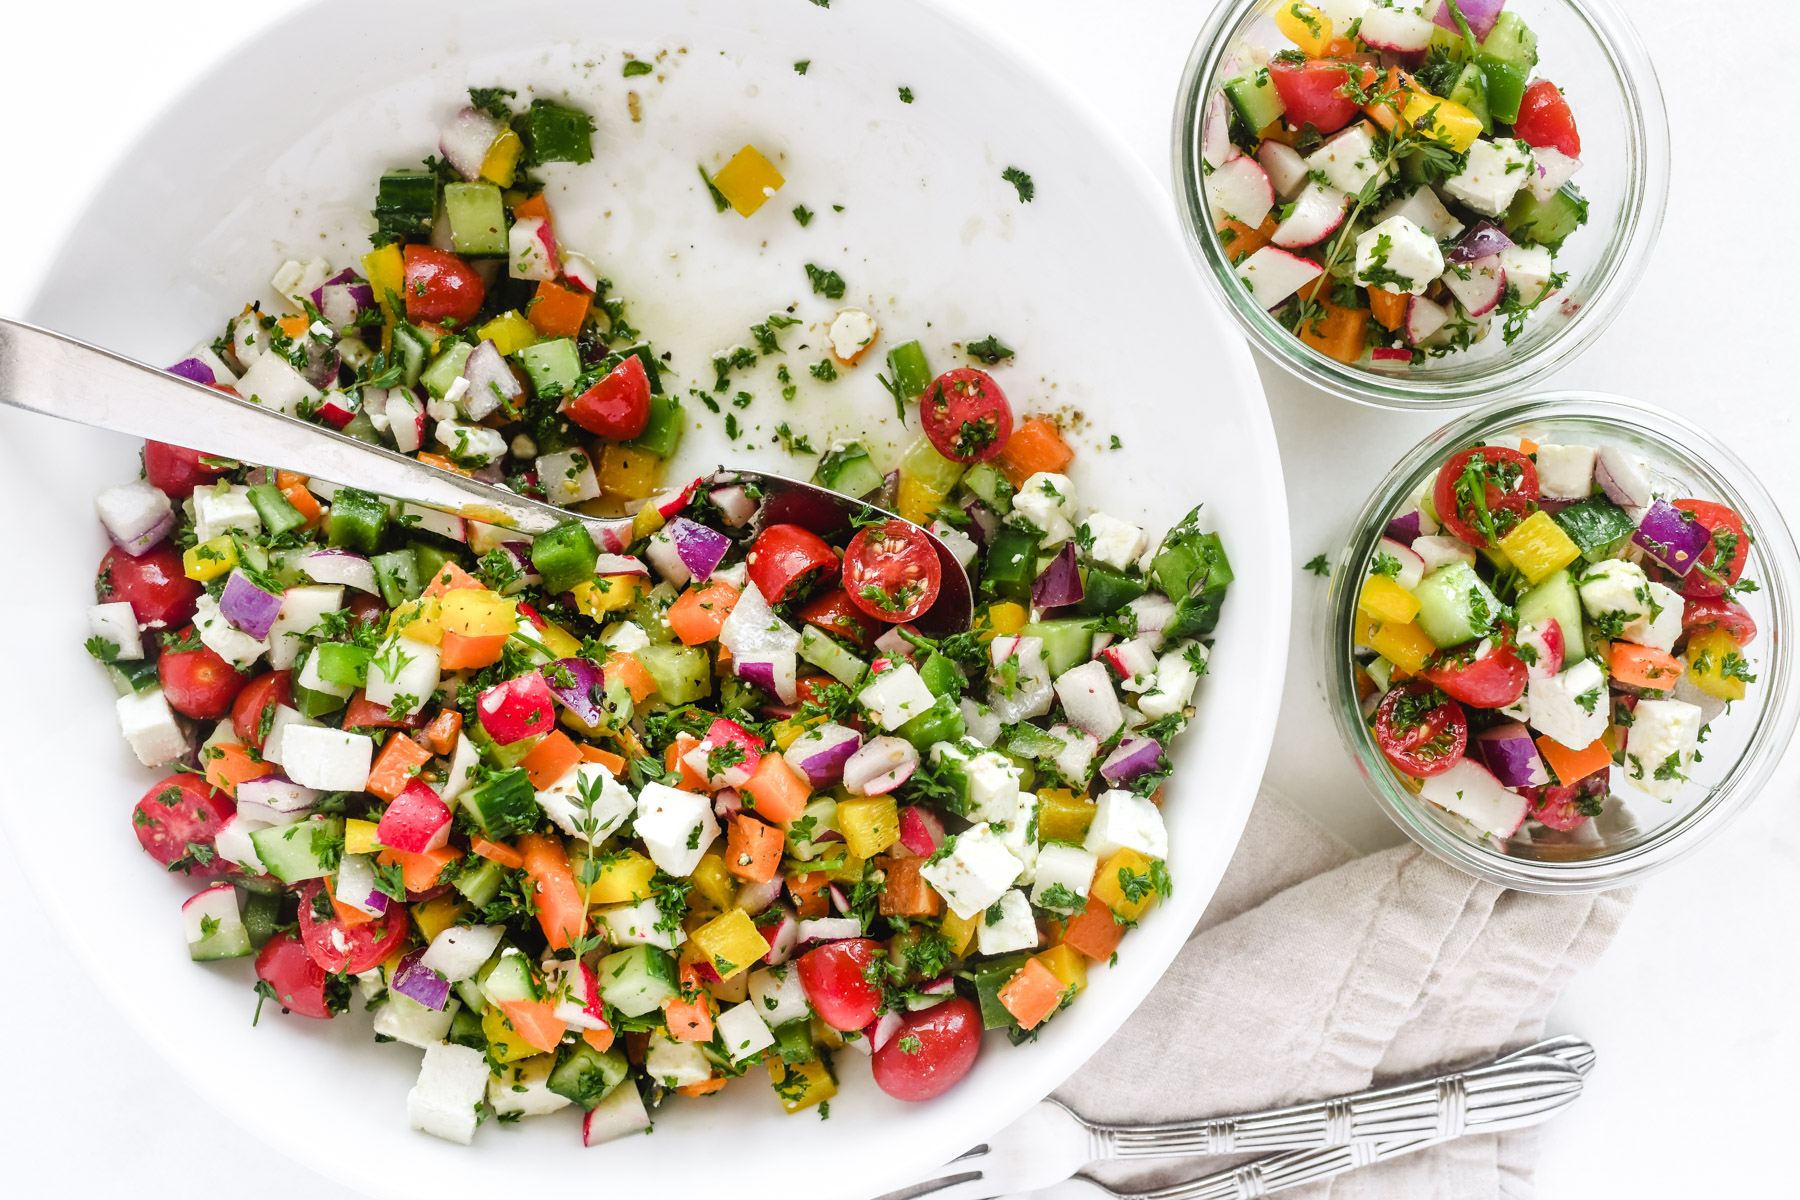 Israeli salad in a bowl with spoons